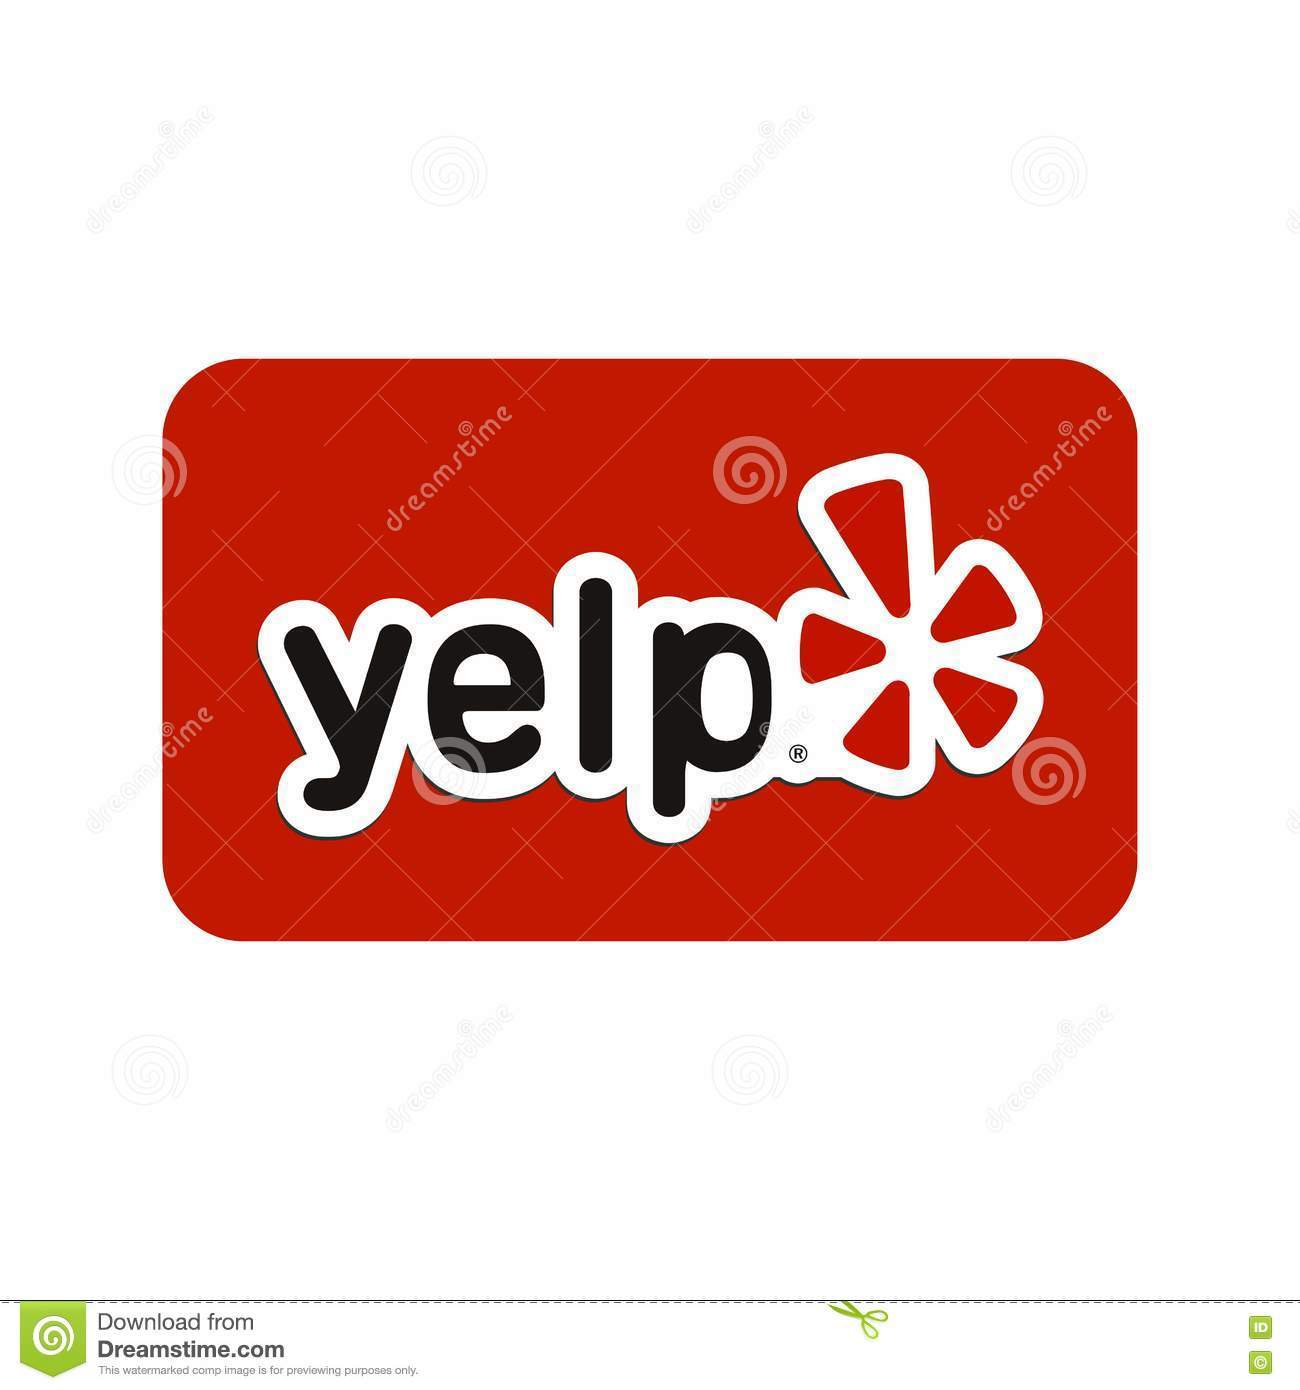 Yelp clipart 4 » Clipart Portal.